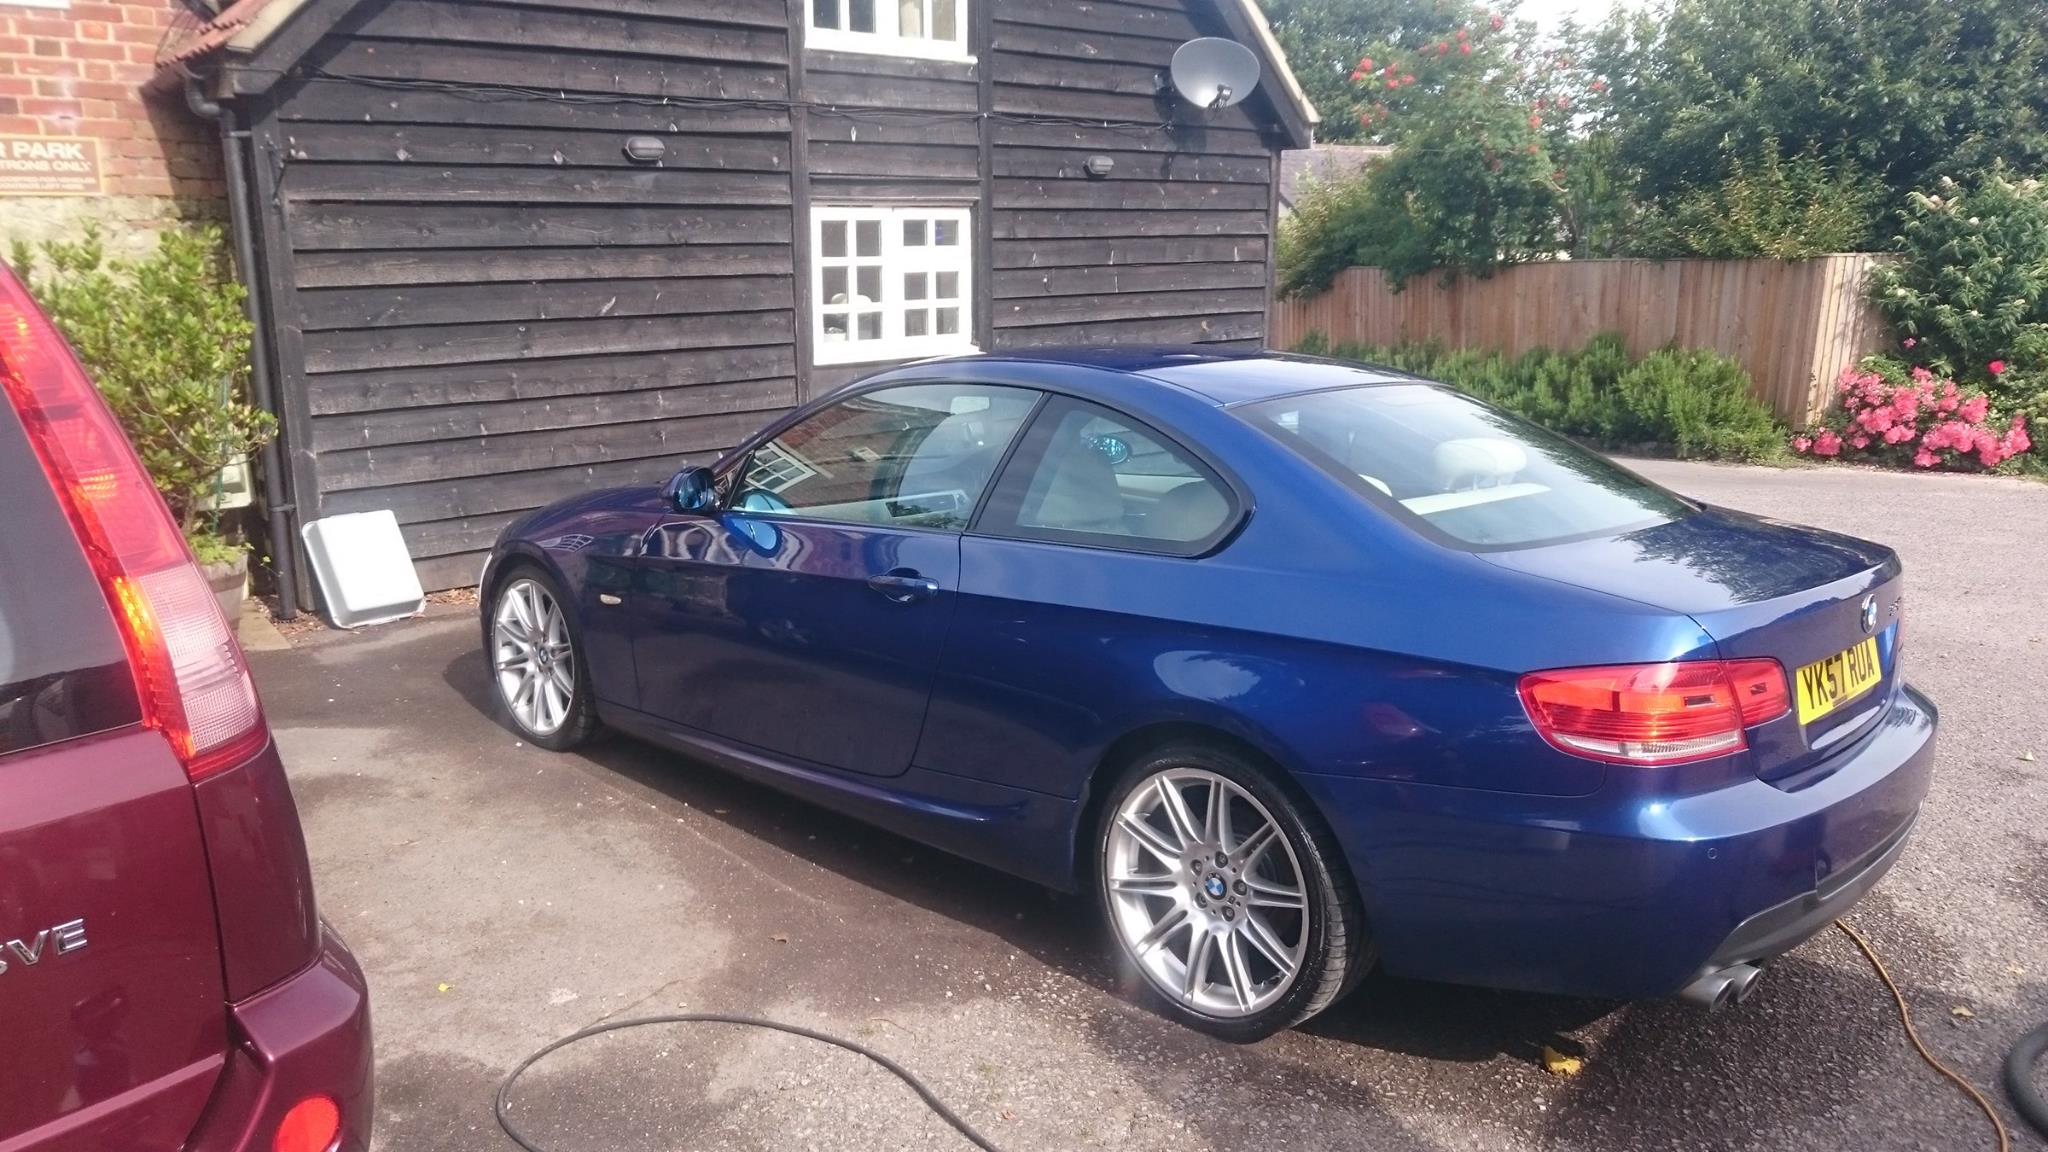 Cleaned car in Dorset